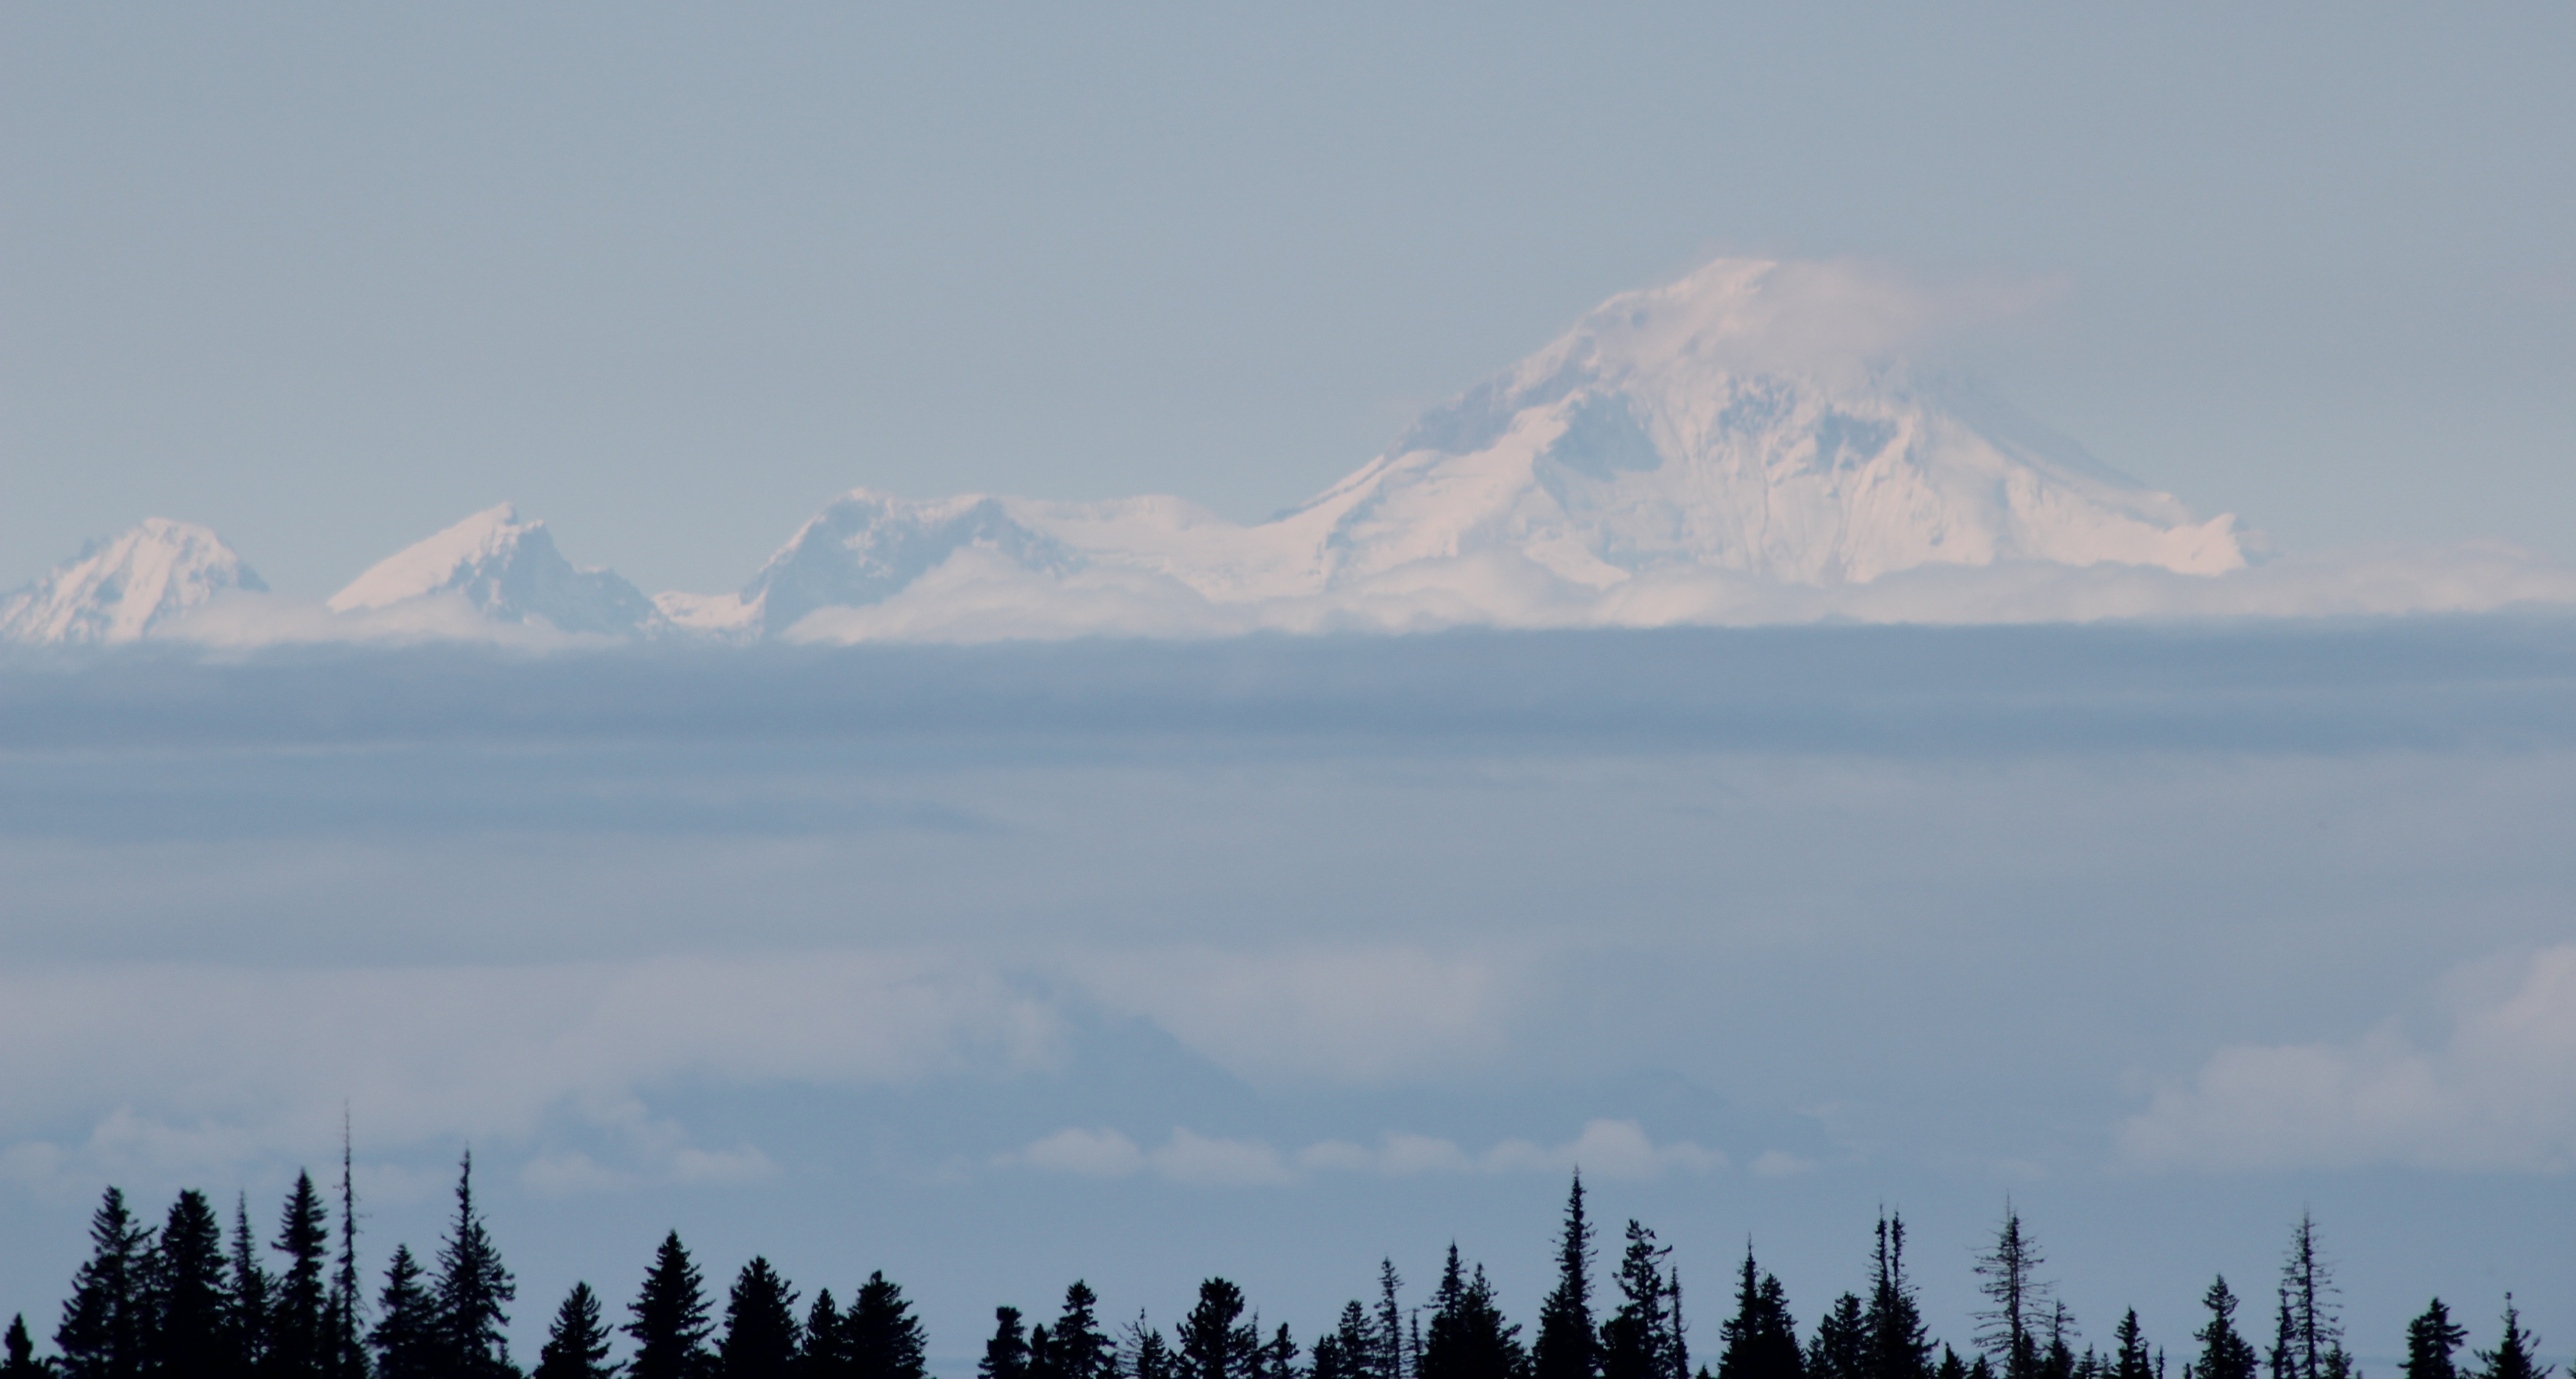 …but on our arrival day, and a bit further down the road towards Homer, the volcano was revealed through the clouds and haze of the distance.